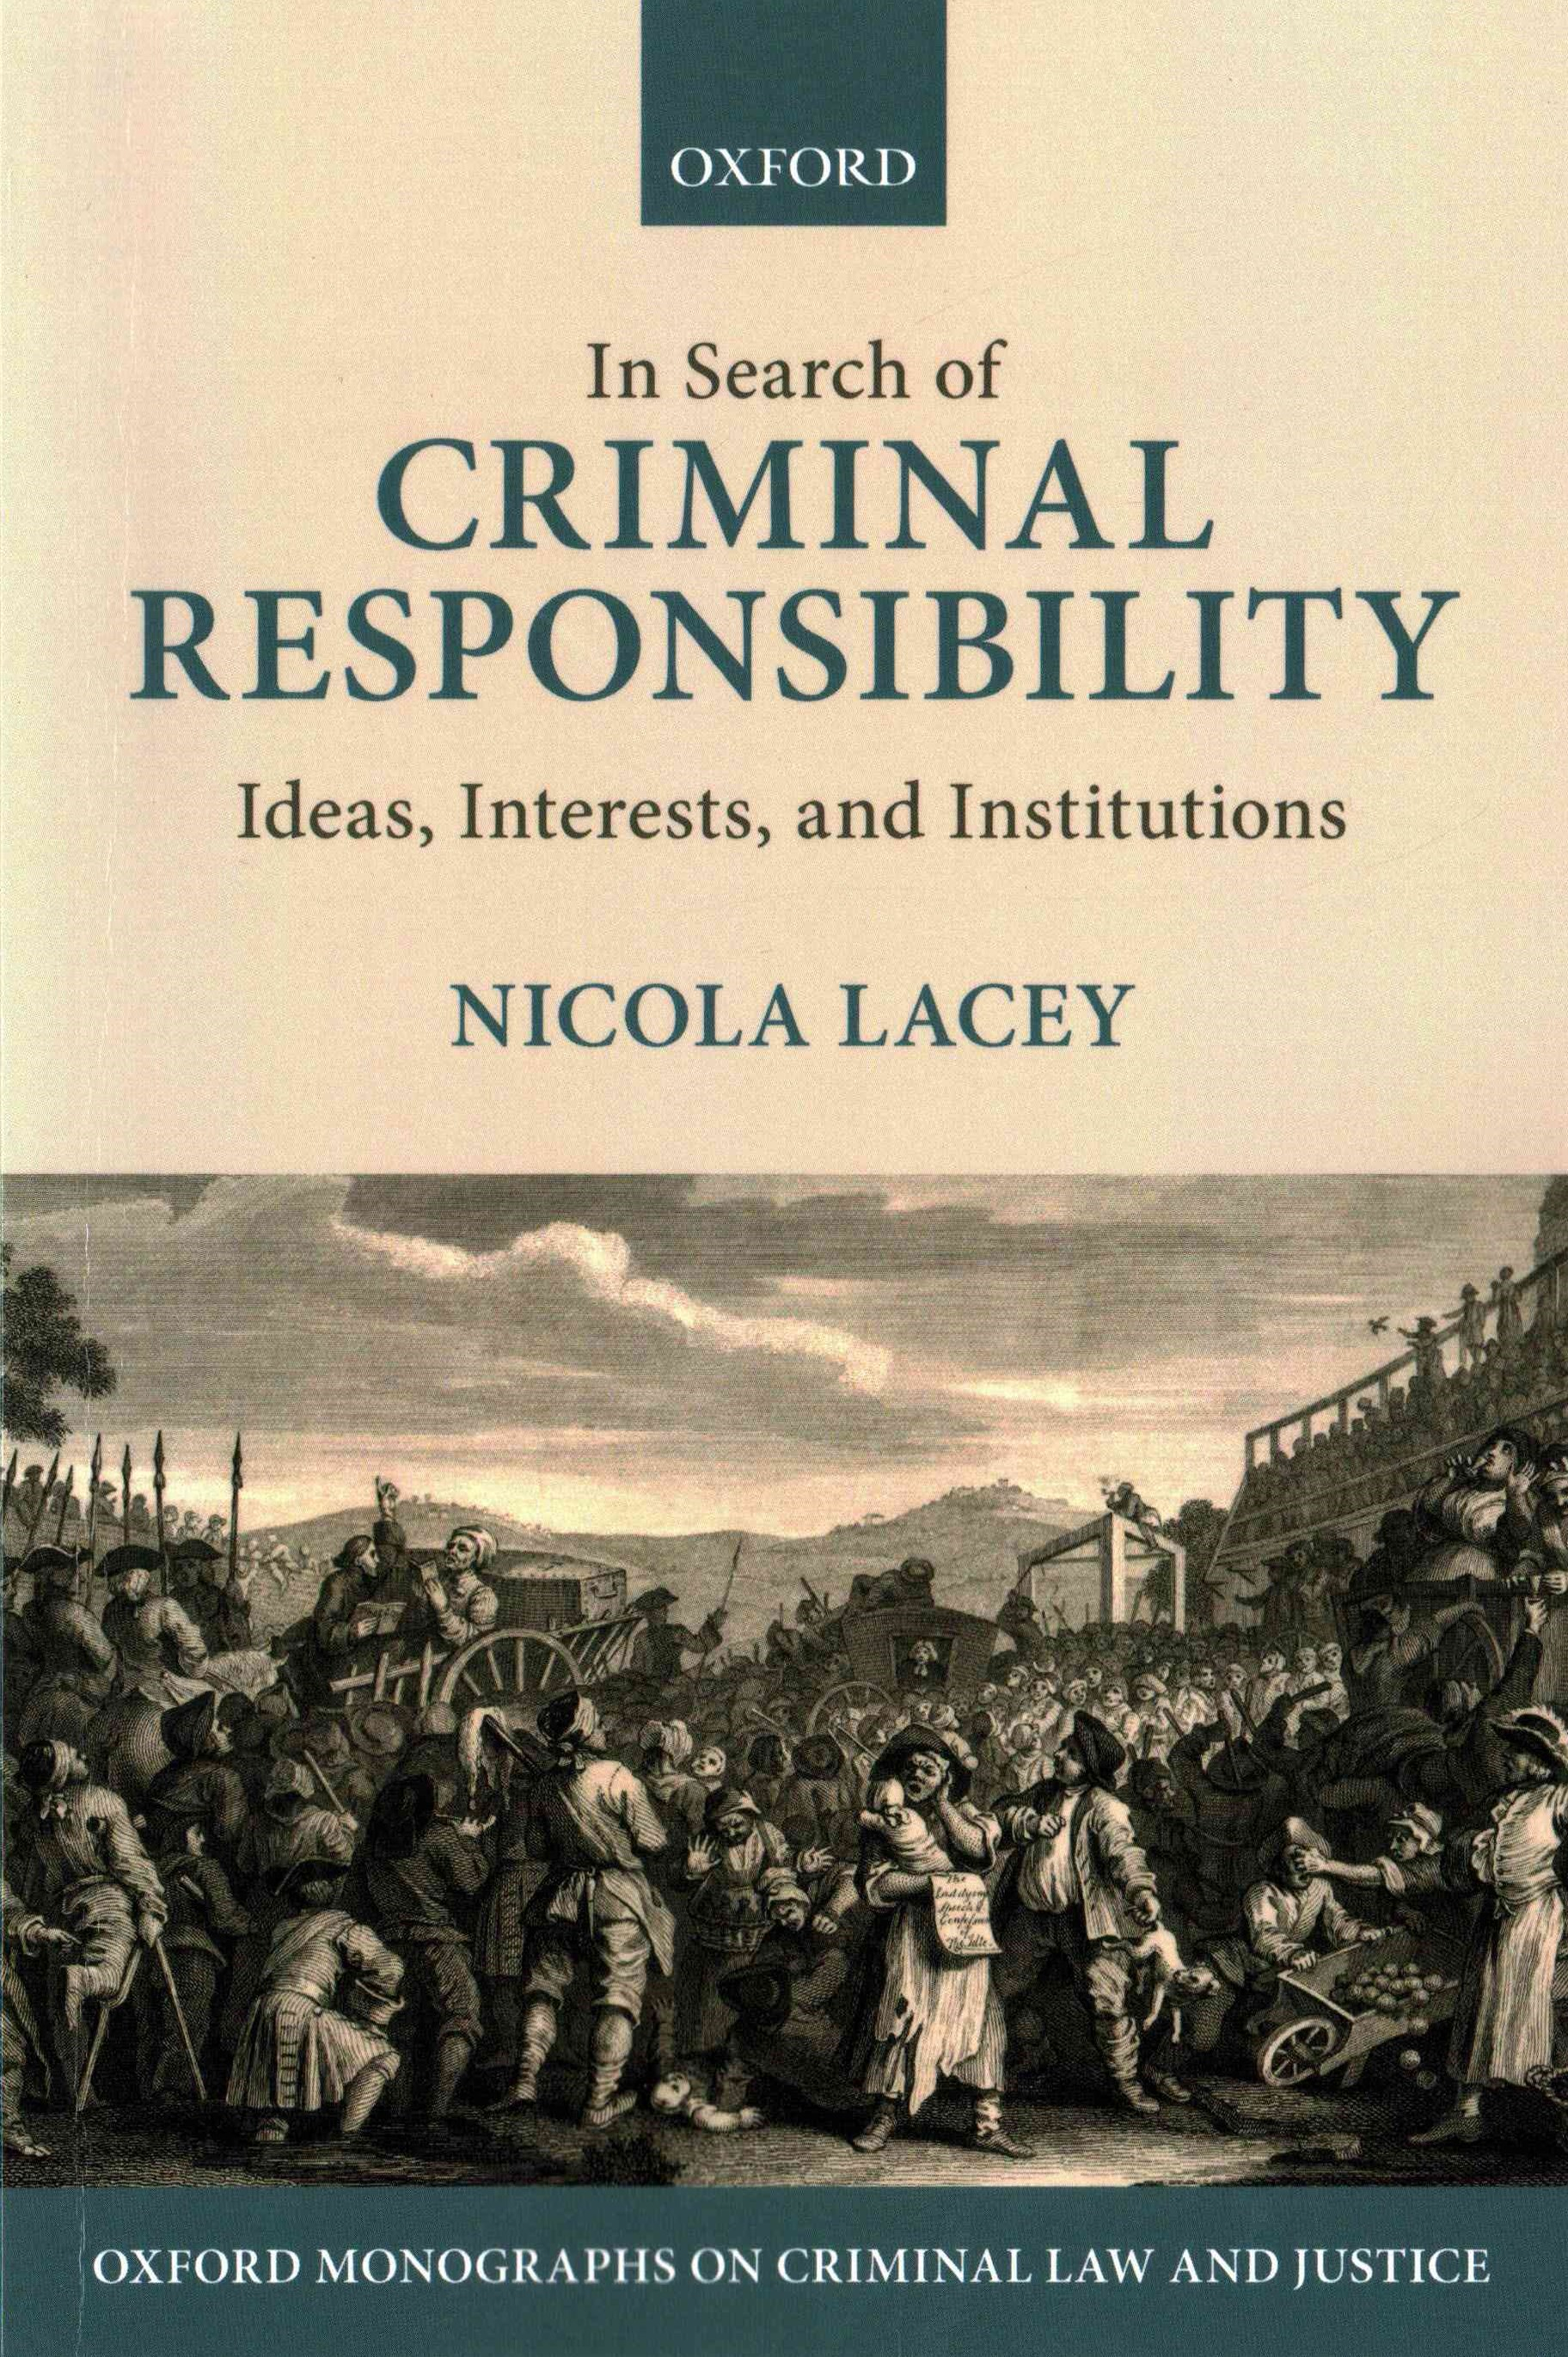 In Search of Criminal Responsibility